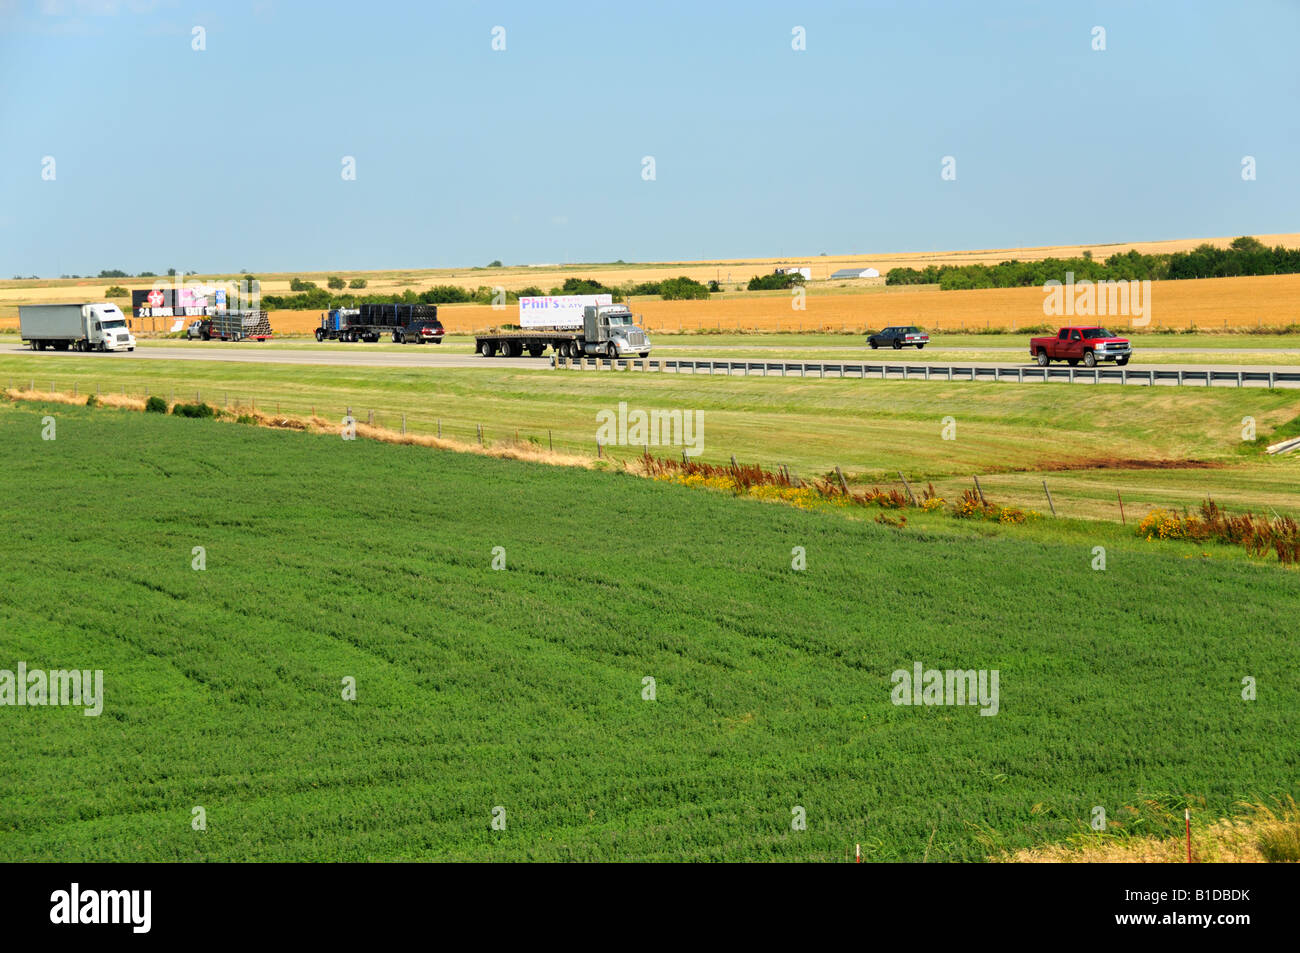 Interstate 40 in central Oklahoma, heavily used by the trucking industry. Here it cuts between wheat and alfalfa - Stock Image